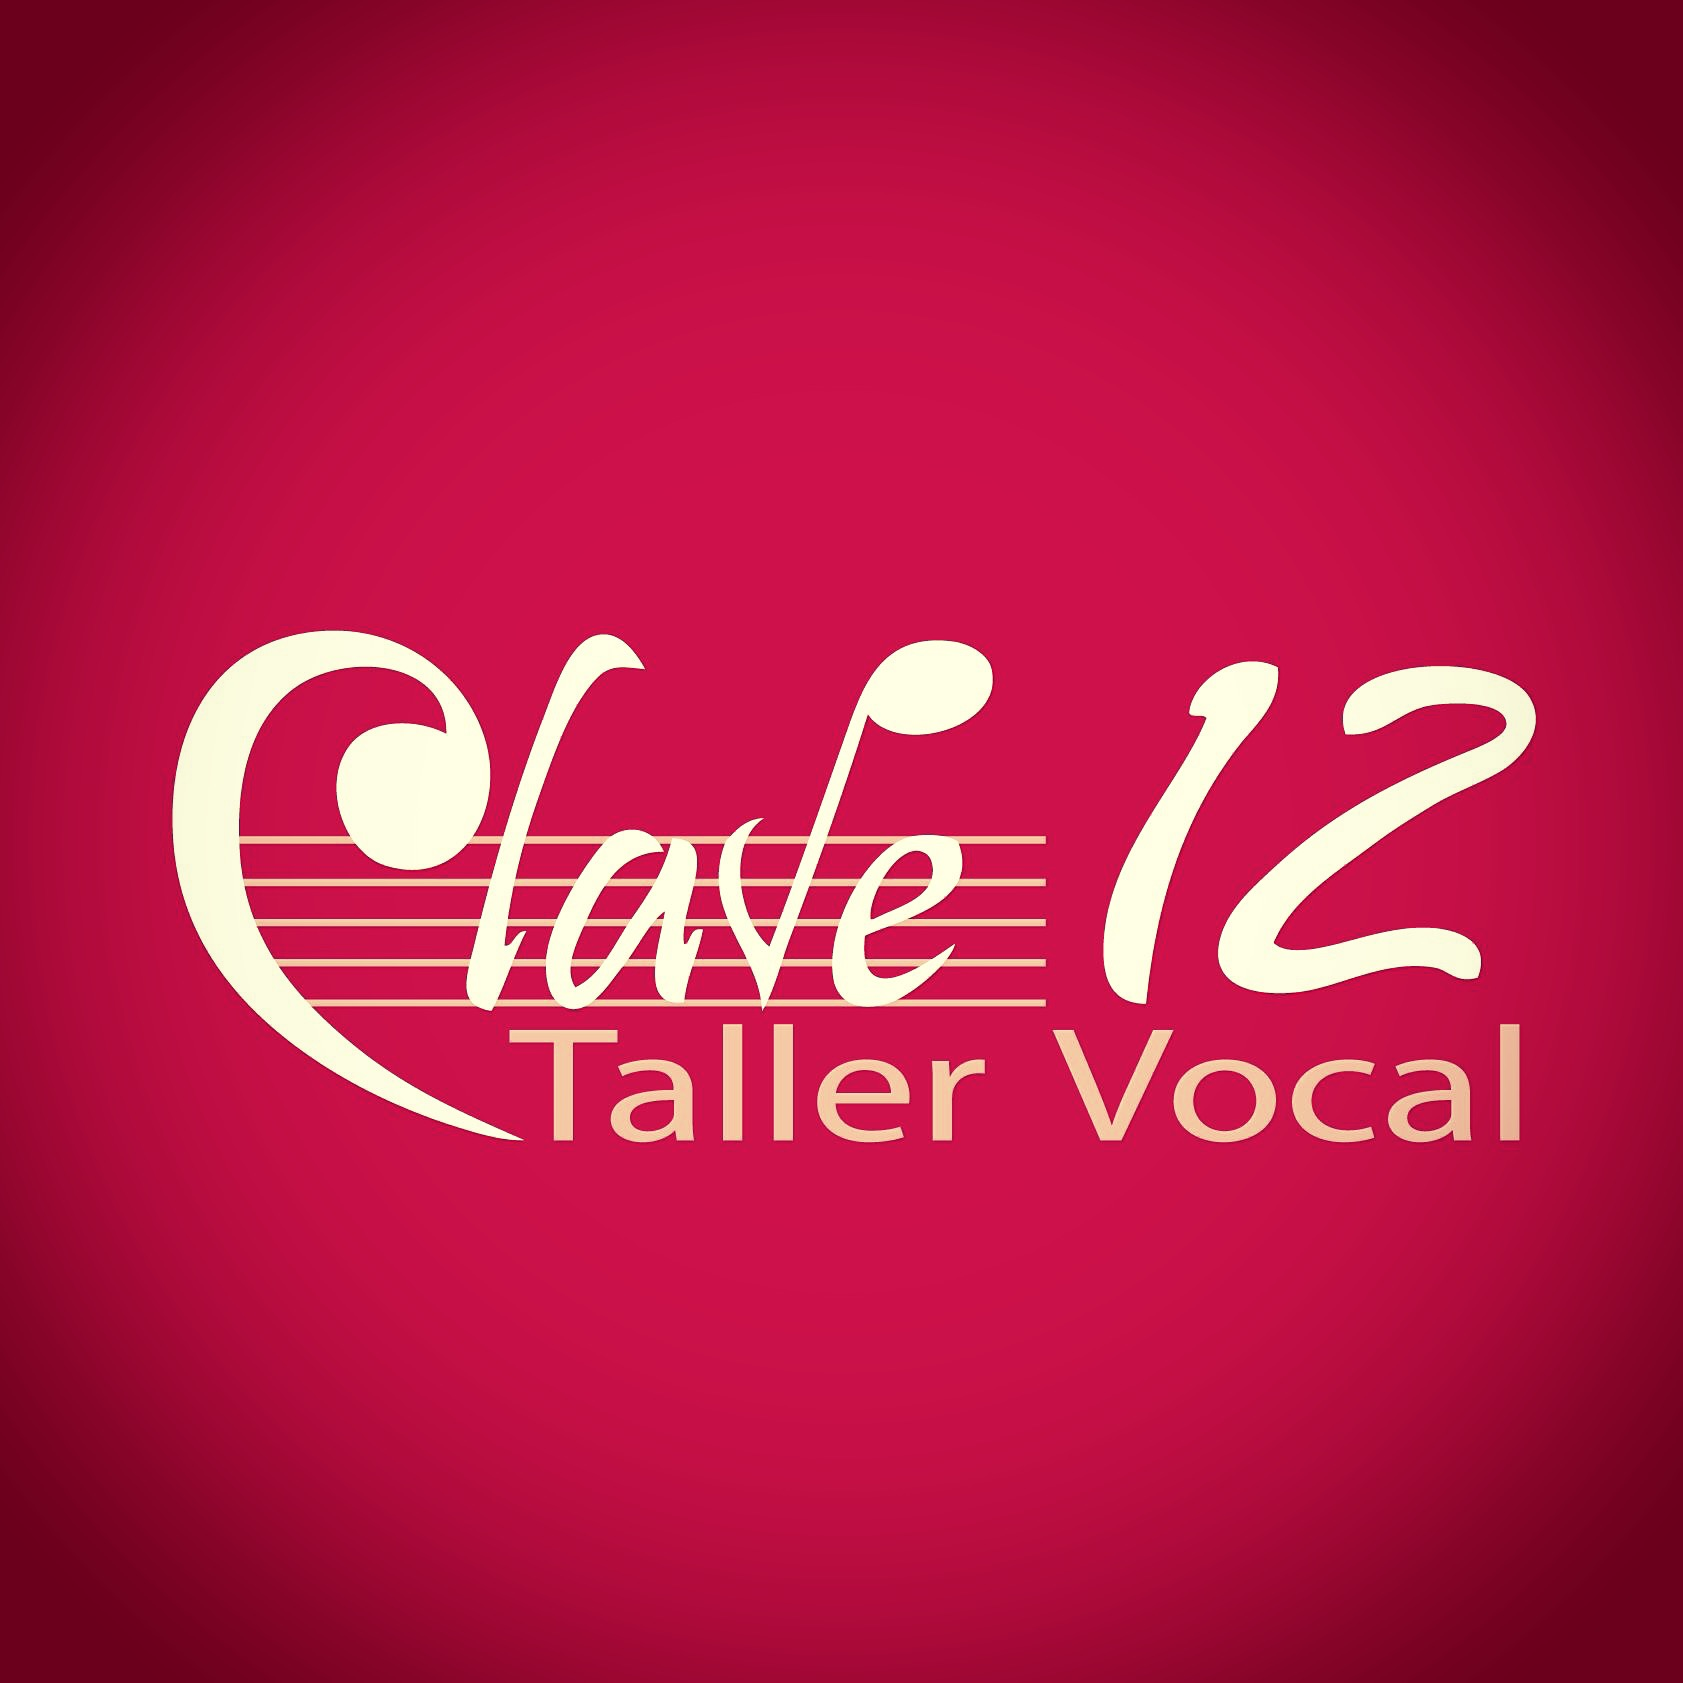 Clave 12